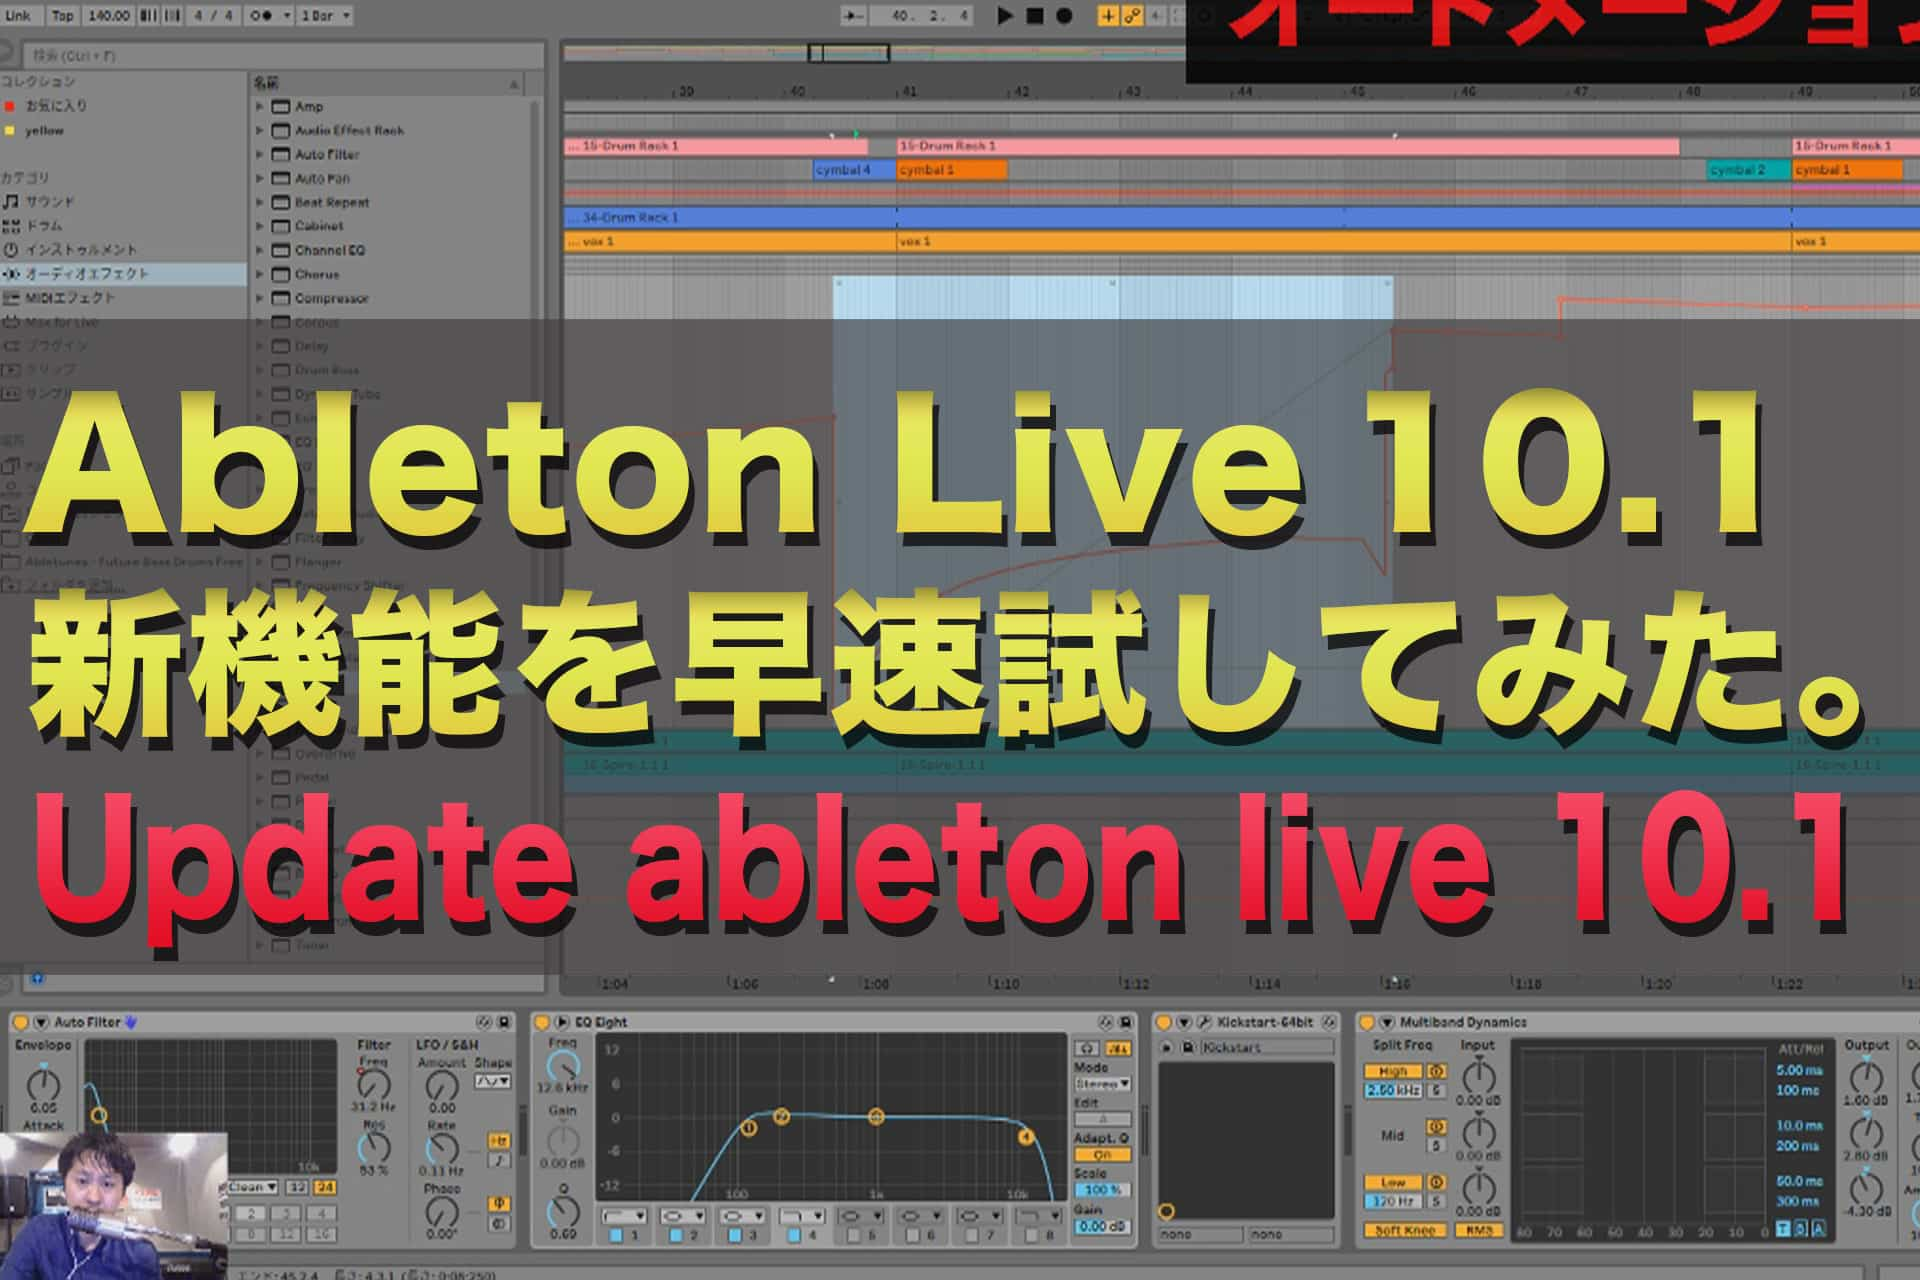 Ableton Live 10.1 新機能を早速試してみた。新機能をレビュー! | Update ableton live 10.1 REVIEW